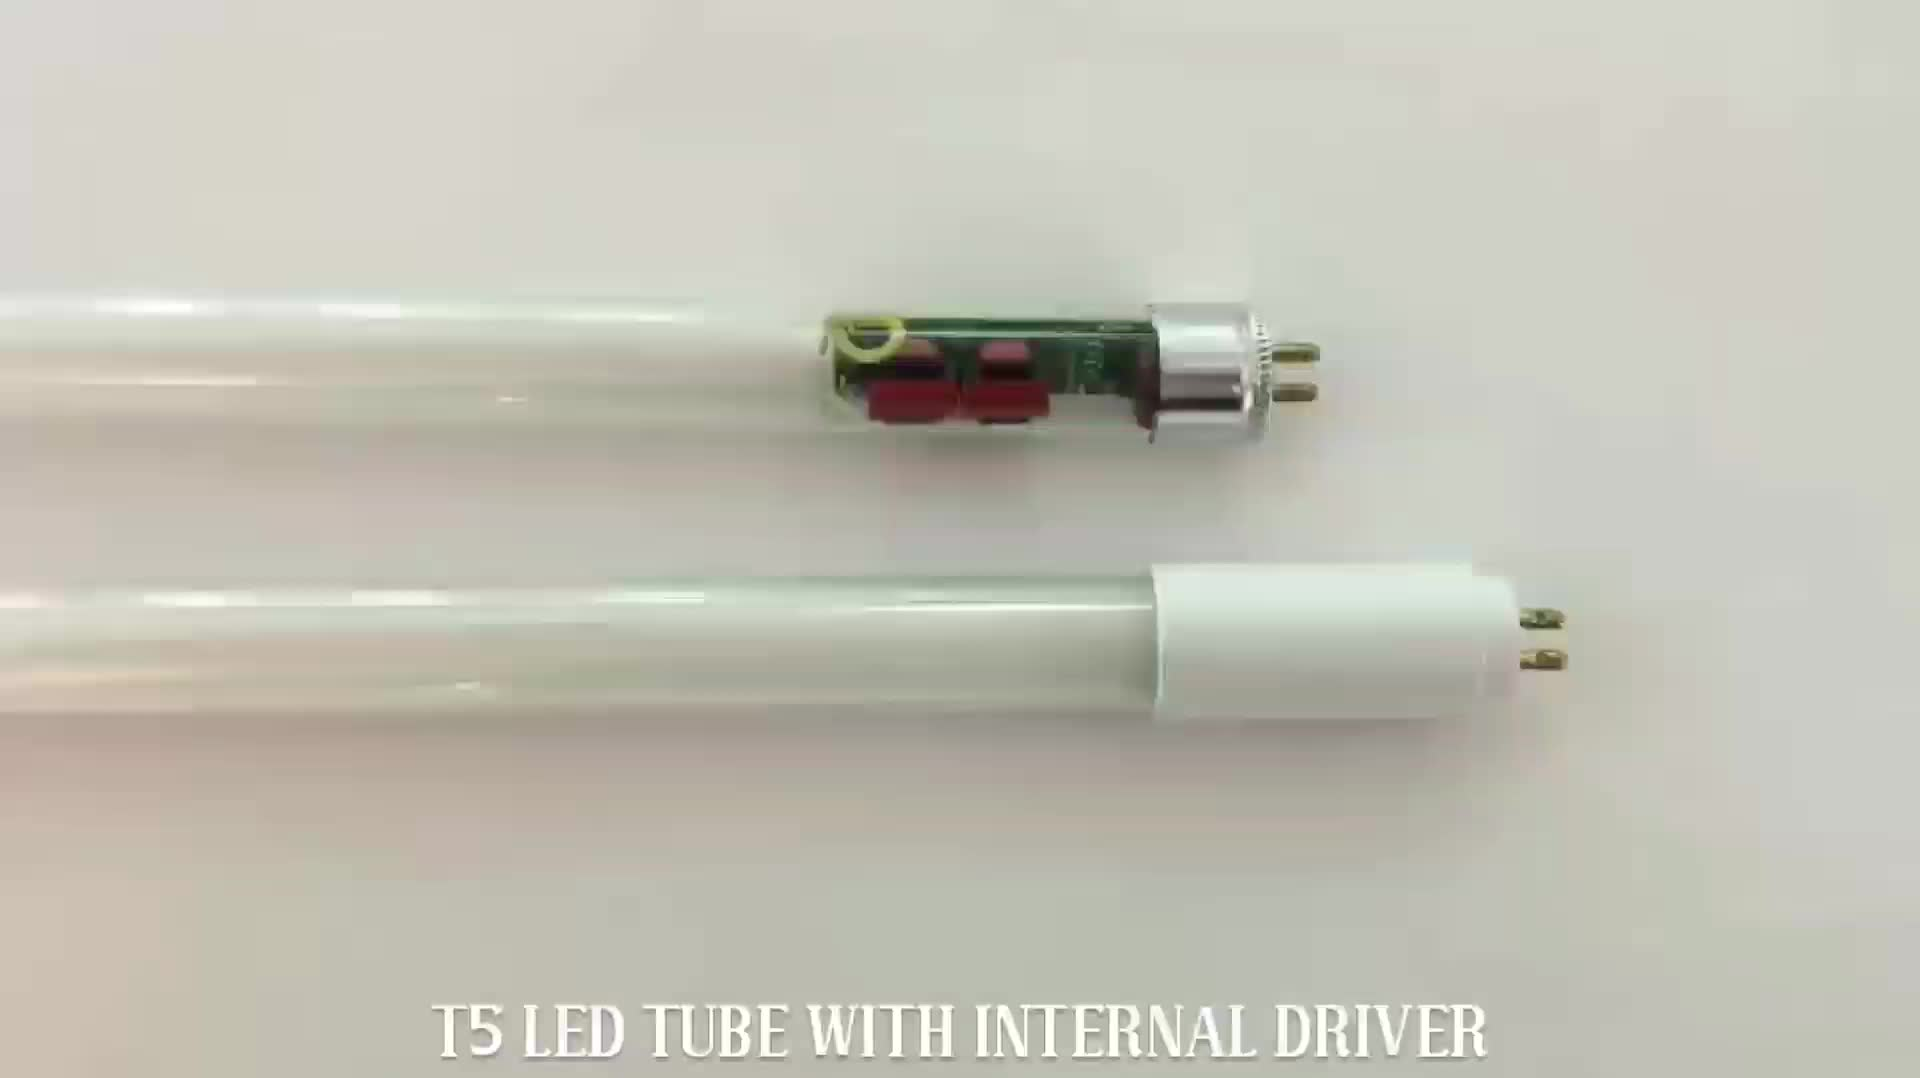 New product T5 LED TUBE 1500mm 22 W LED TUBE T5 SMD 2835 9 W 18 W 20 W Integrated driver